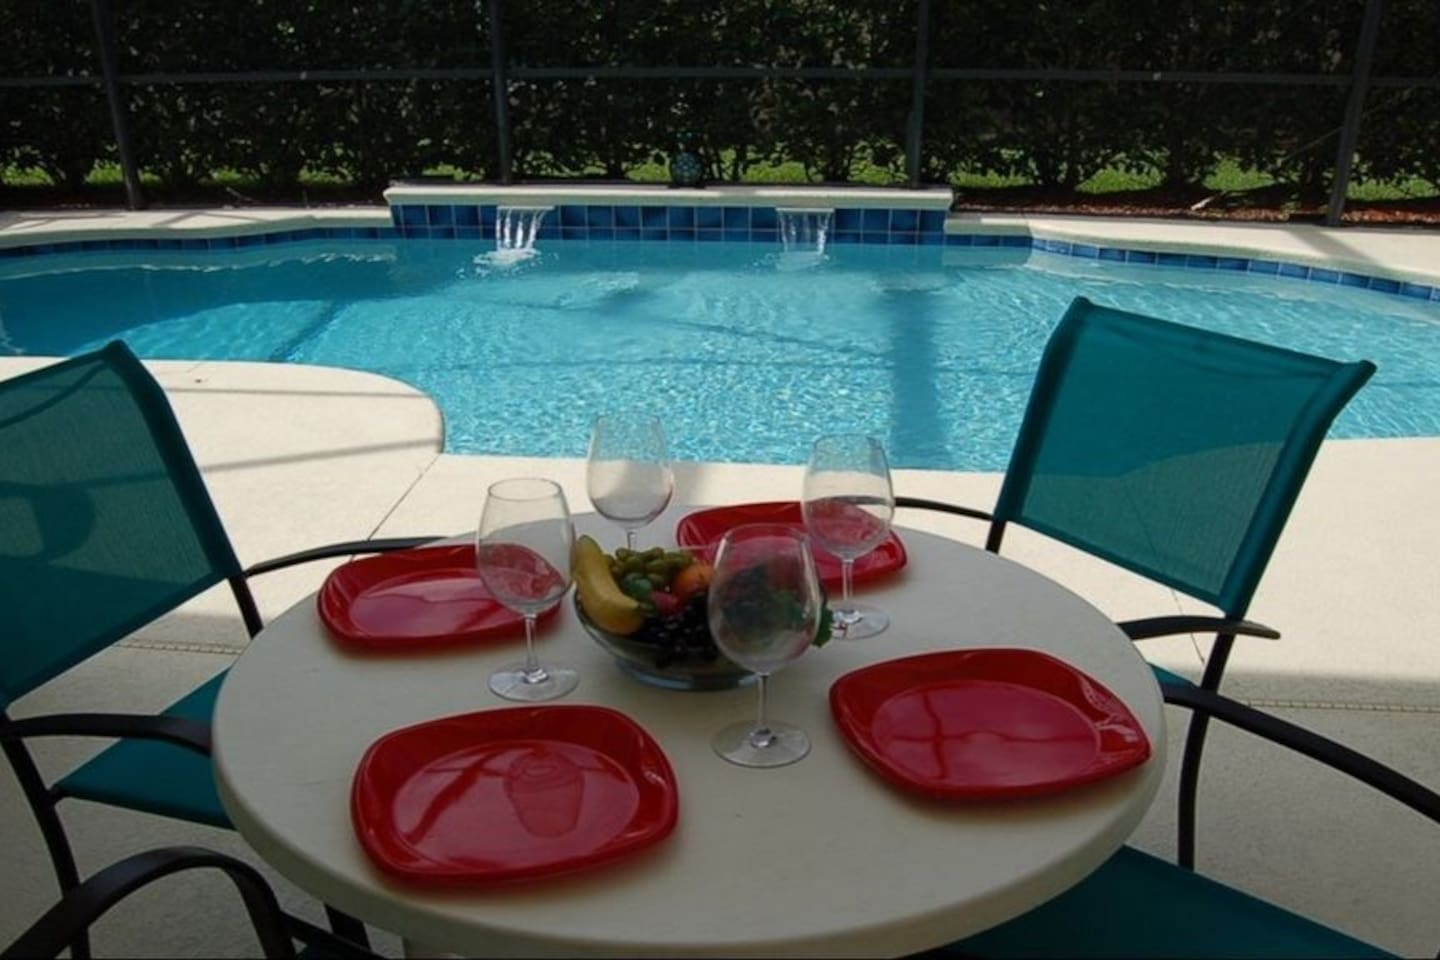 Imagine al fresco dining by your private pool